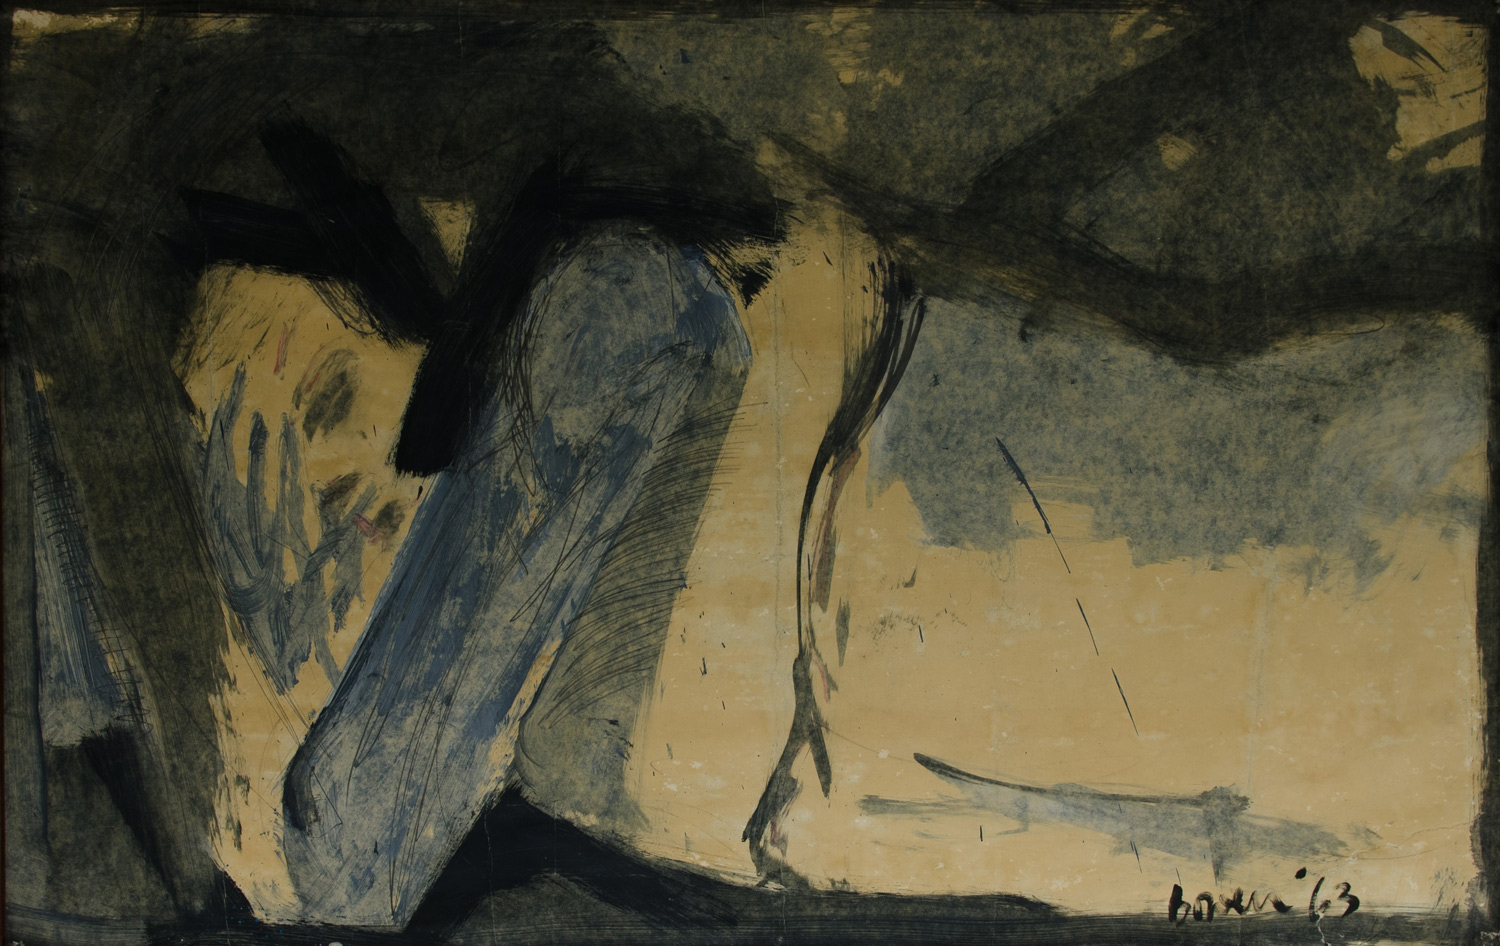 Michael Bowen, The Day After, 1963. Tilhører Universitetet i Agder